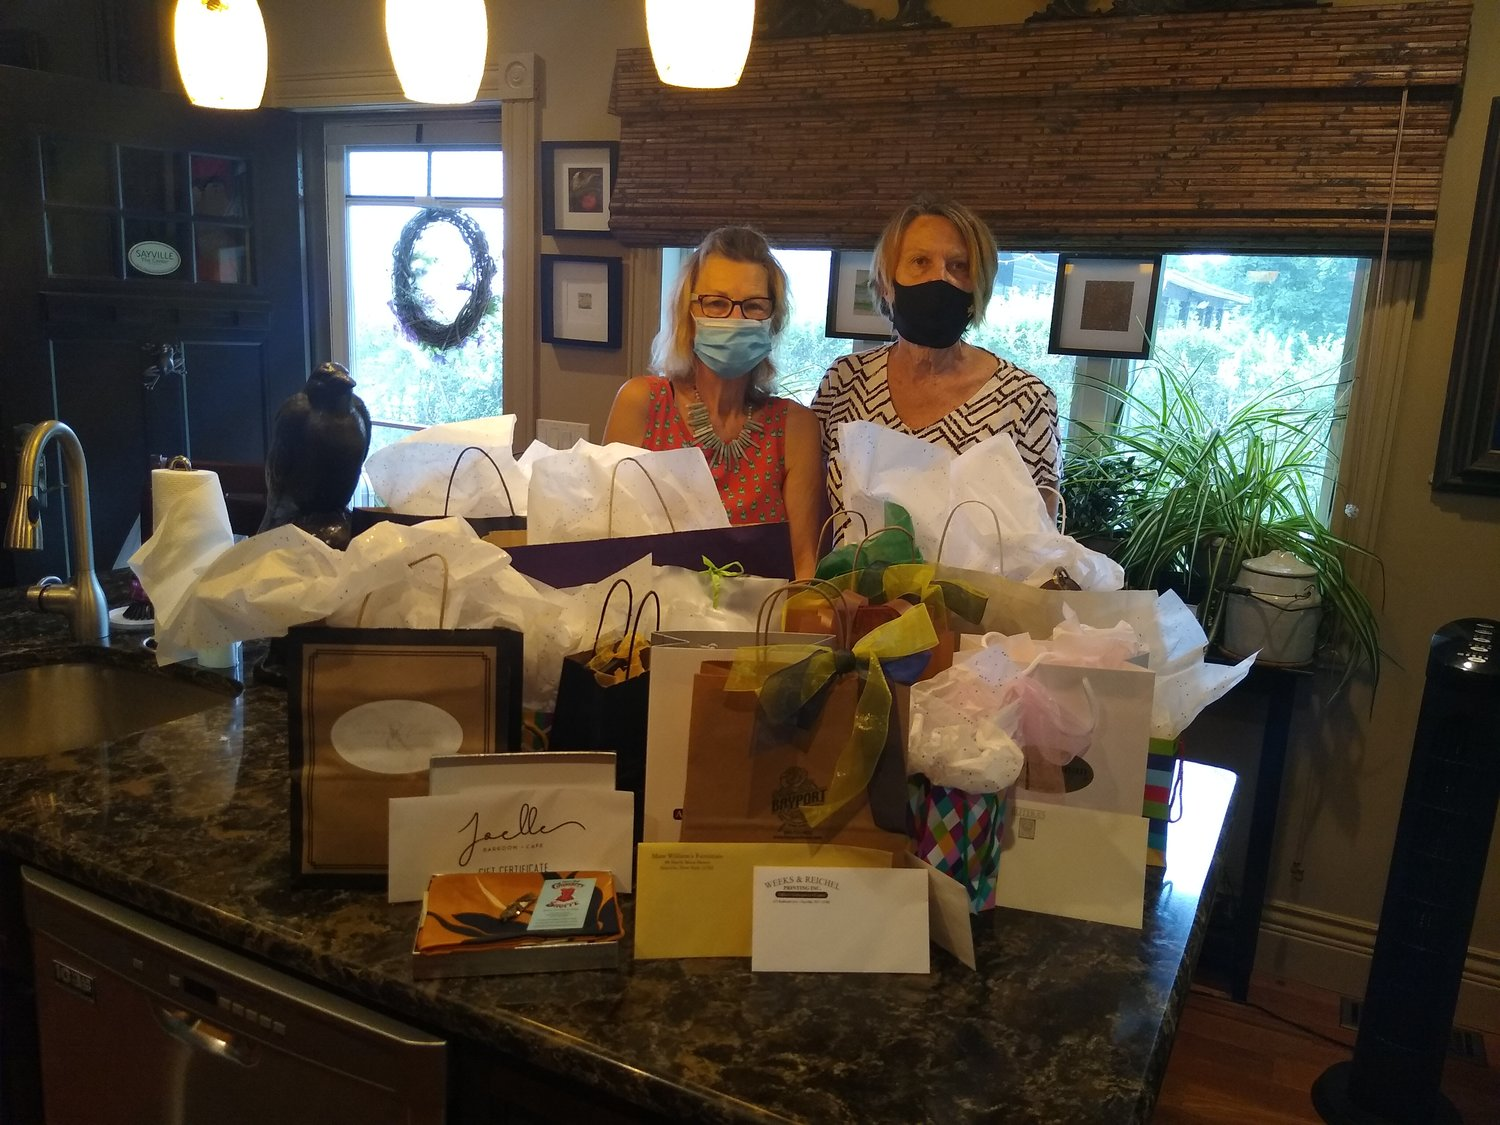 President Barbara Fitzpatrick (left) and first vice president Bernice Corbin (right) of the Sayville Village Improvement Society are pictured with over $1,000 worth of purchases made by the SVIS at local vendors for their future fundraisers.